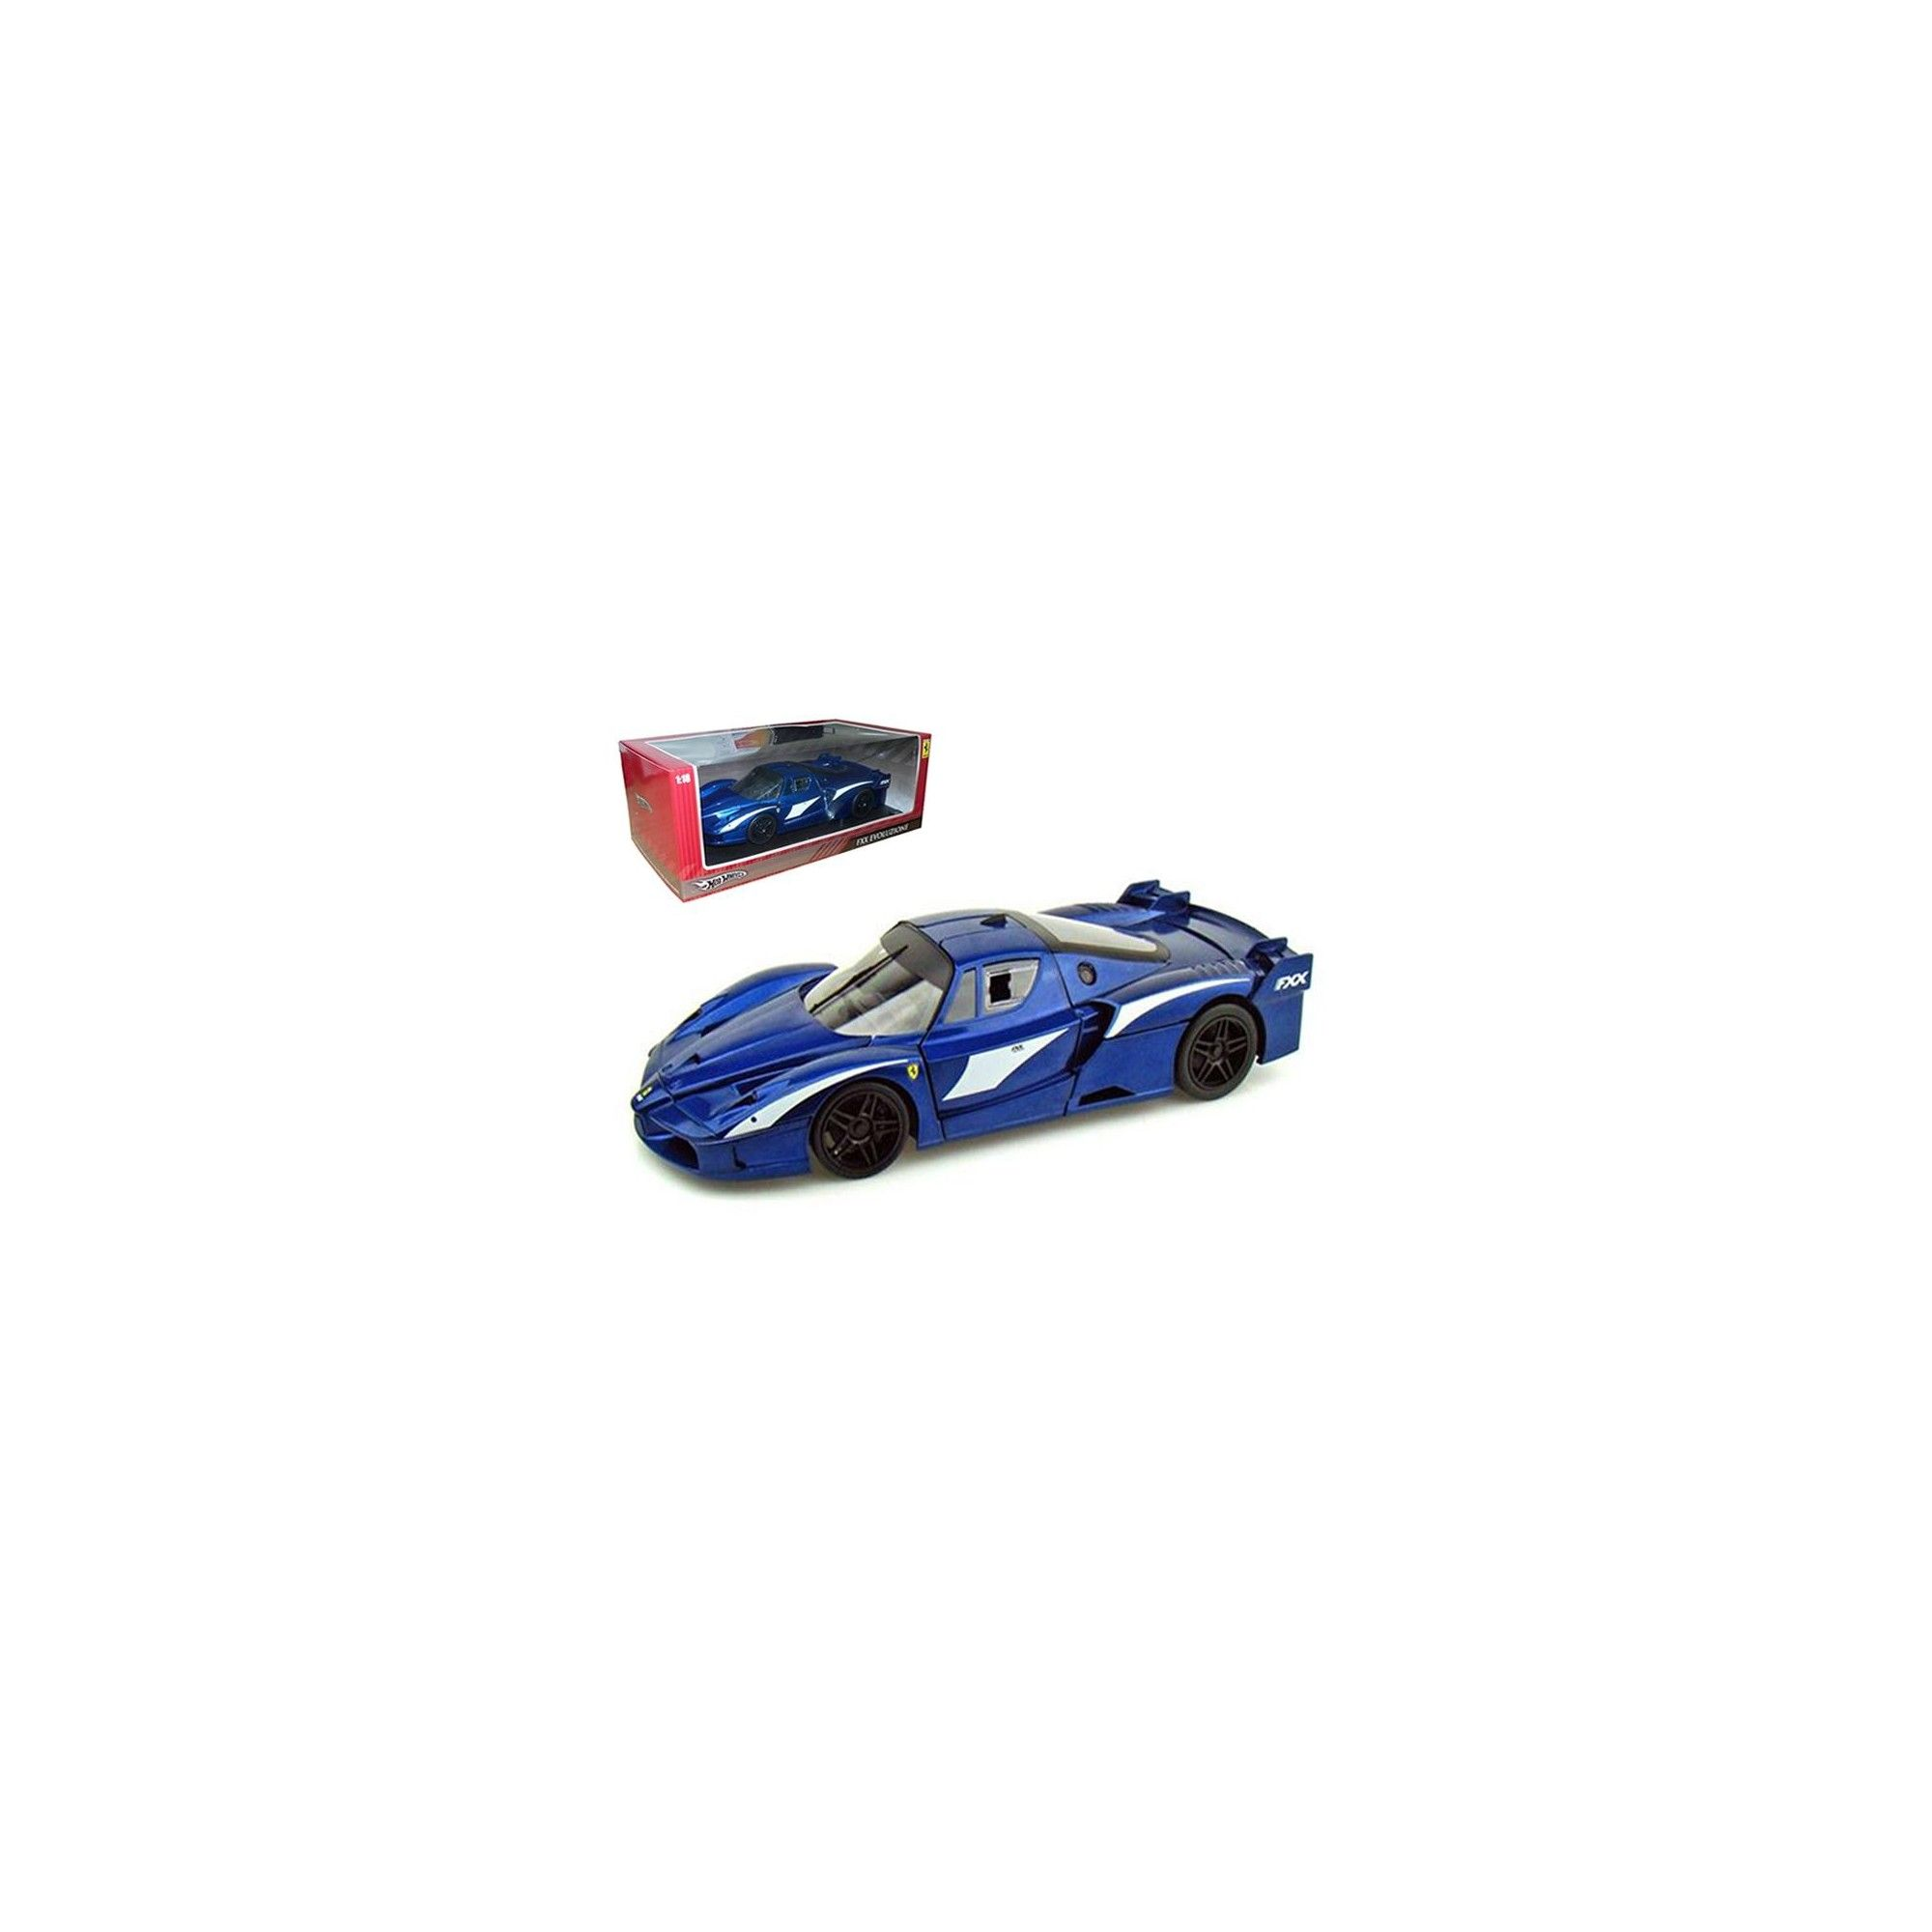 Ferrari FXX Evoluzione Blue 1/18 Diecast Car Model by Hotwheels #ferrarifxx